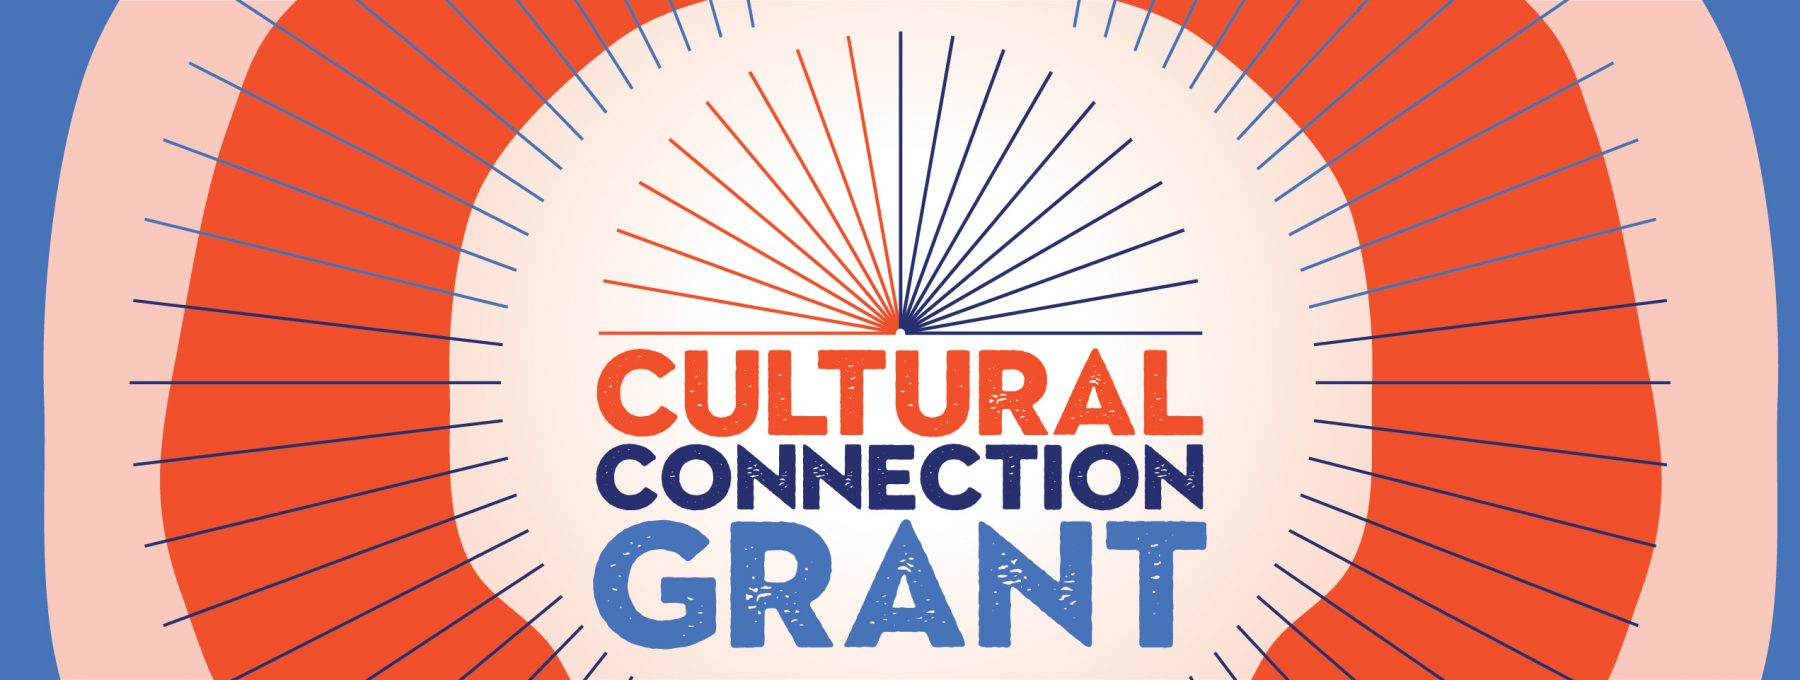 Cultural Connection Grant